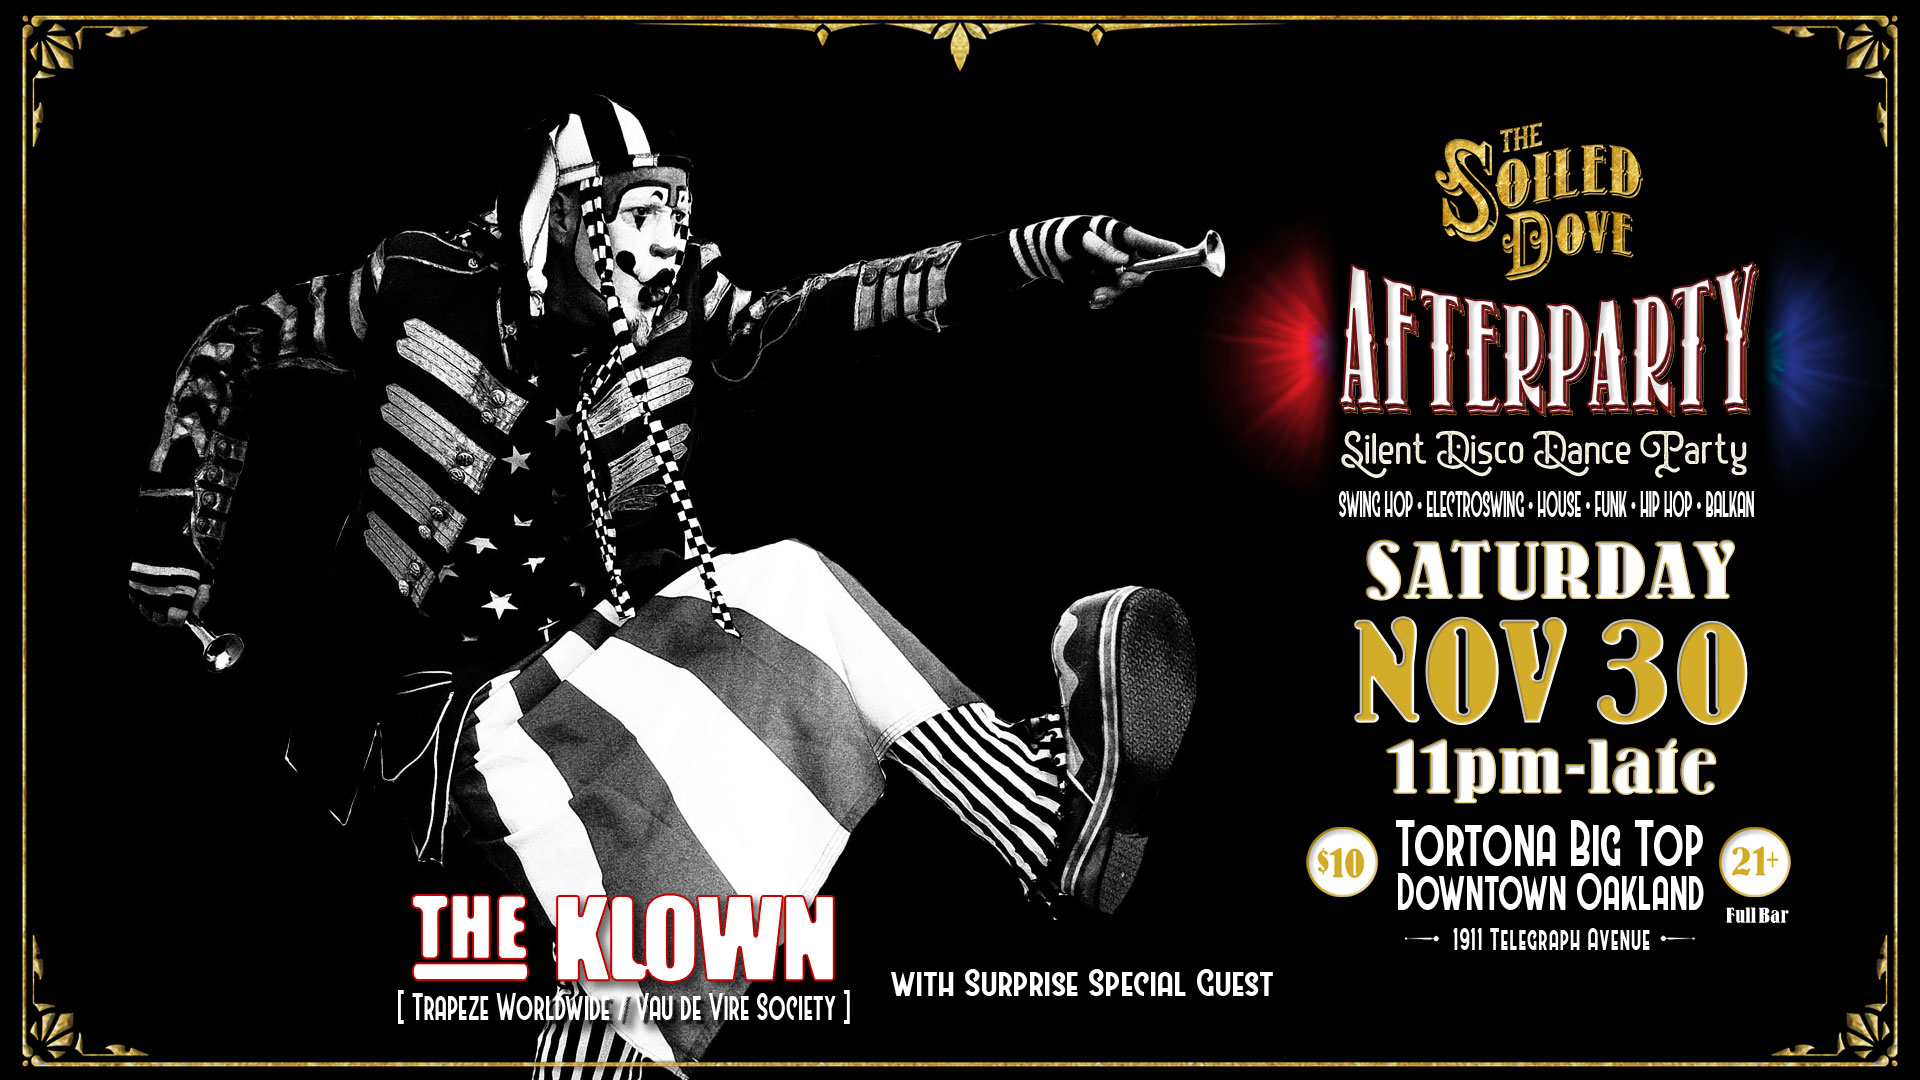 The Klown DJ residency at The Soiled Dove Silent Disco Afterparty - Saturday, November 30, 2019 - Tortona Big Top in Oakland, California